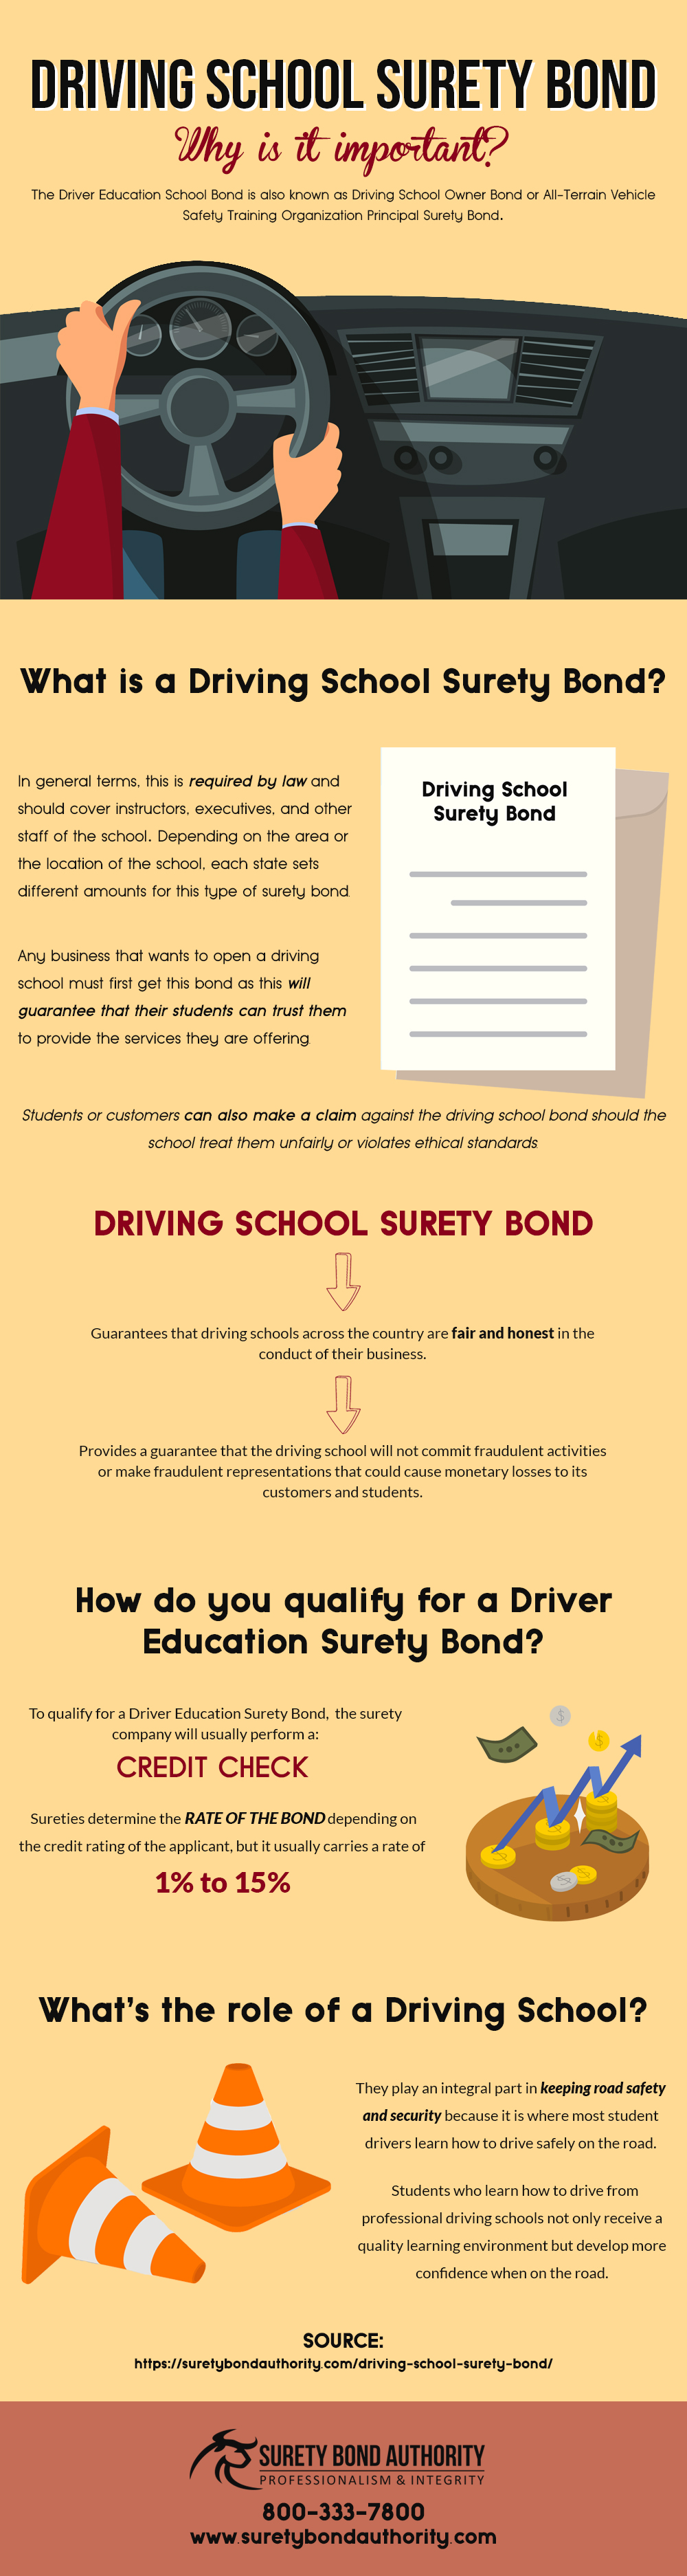 Driving School Bond Infographic